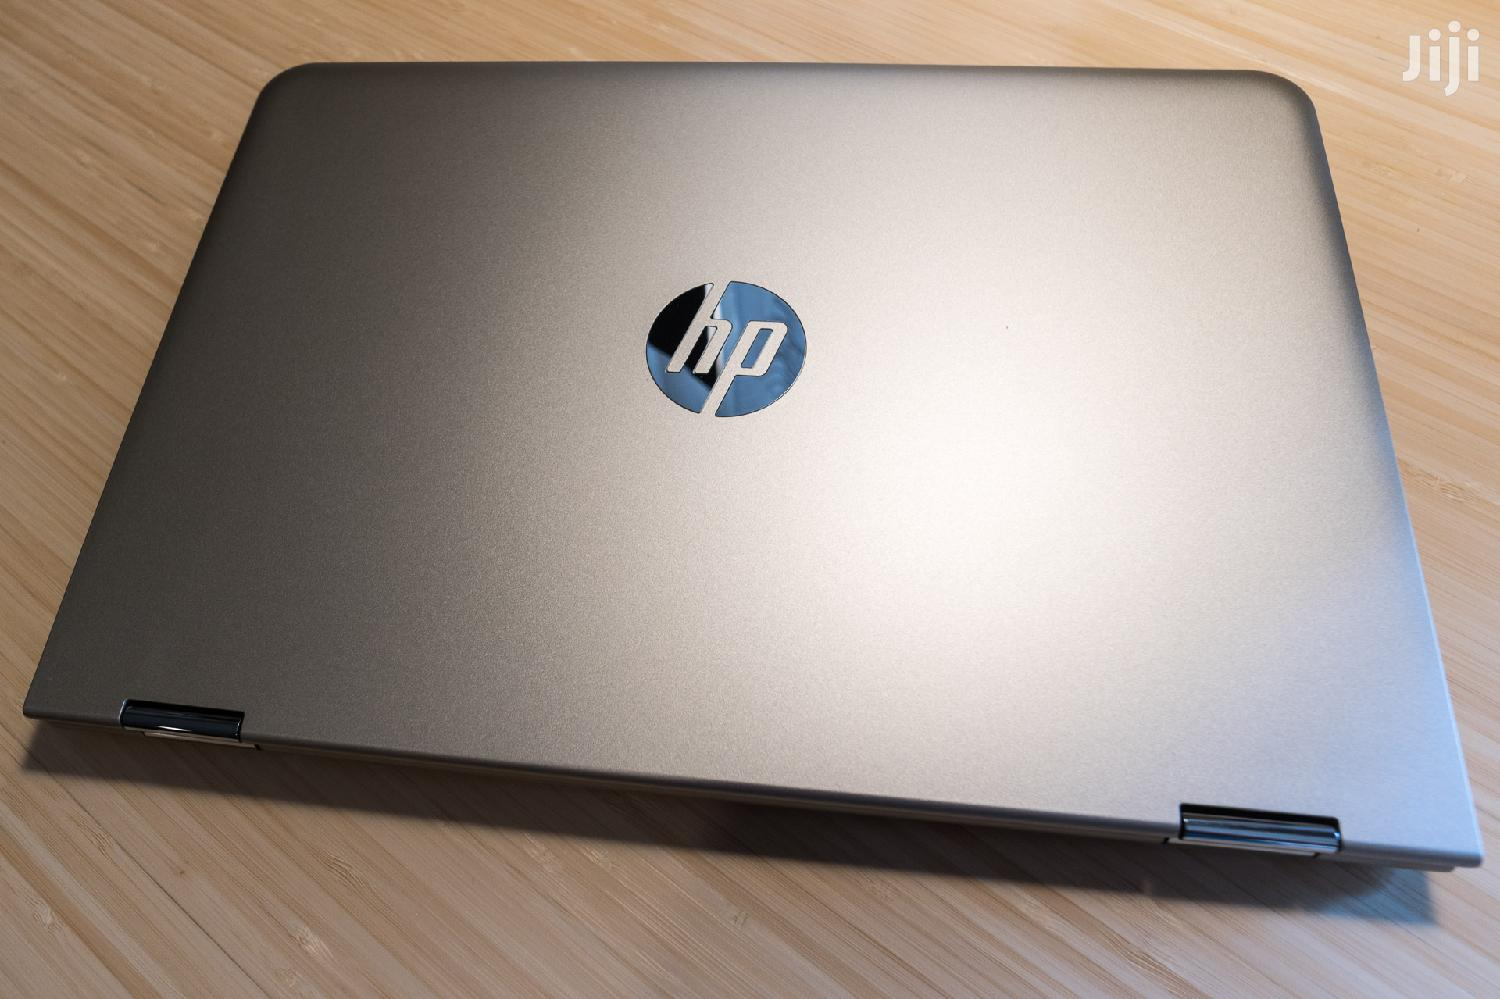 New Laptop HP Pavilion X360 15t 8GB Intel Core I5 HDD 1T | Laptops & Computers for sale in Nairobi Central, Nairobi, Kenya